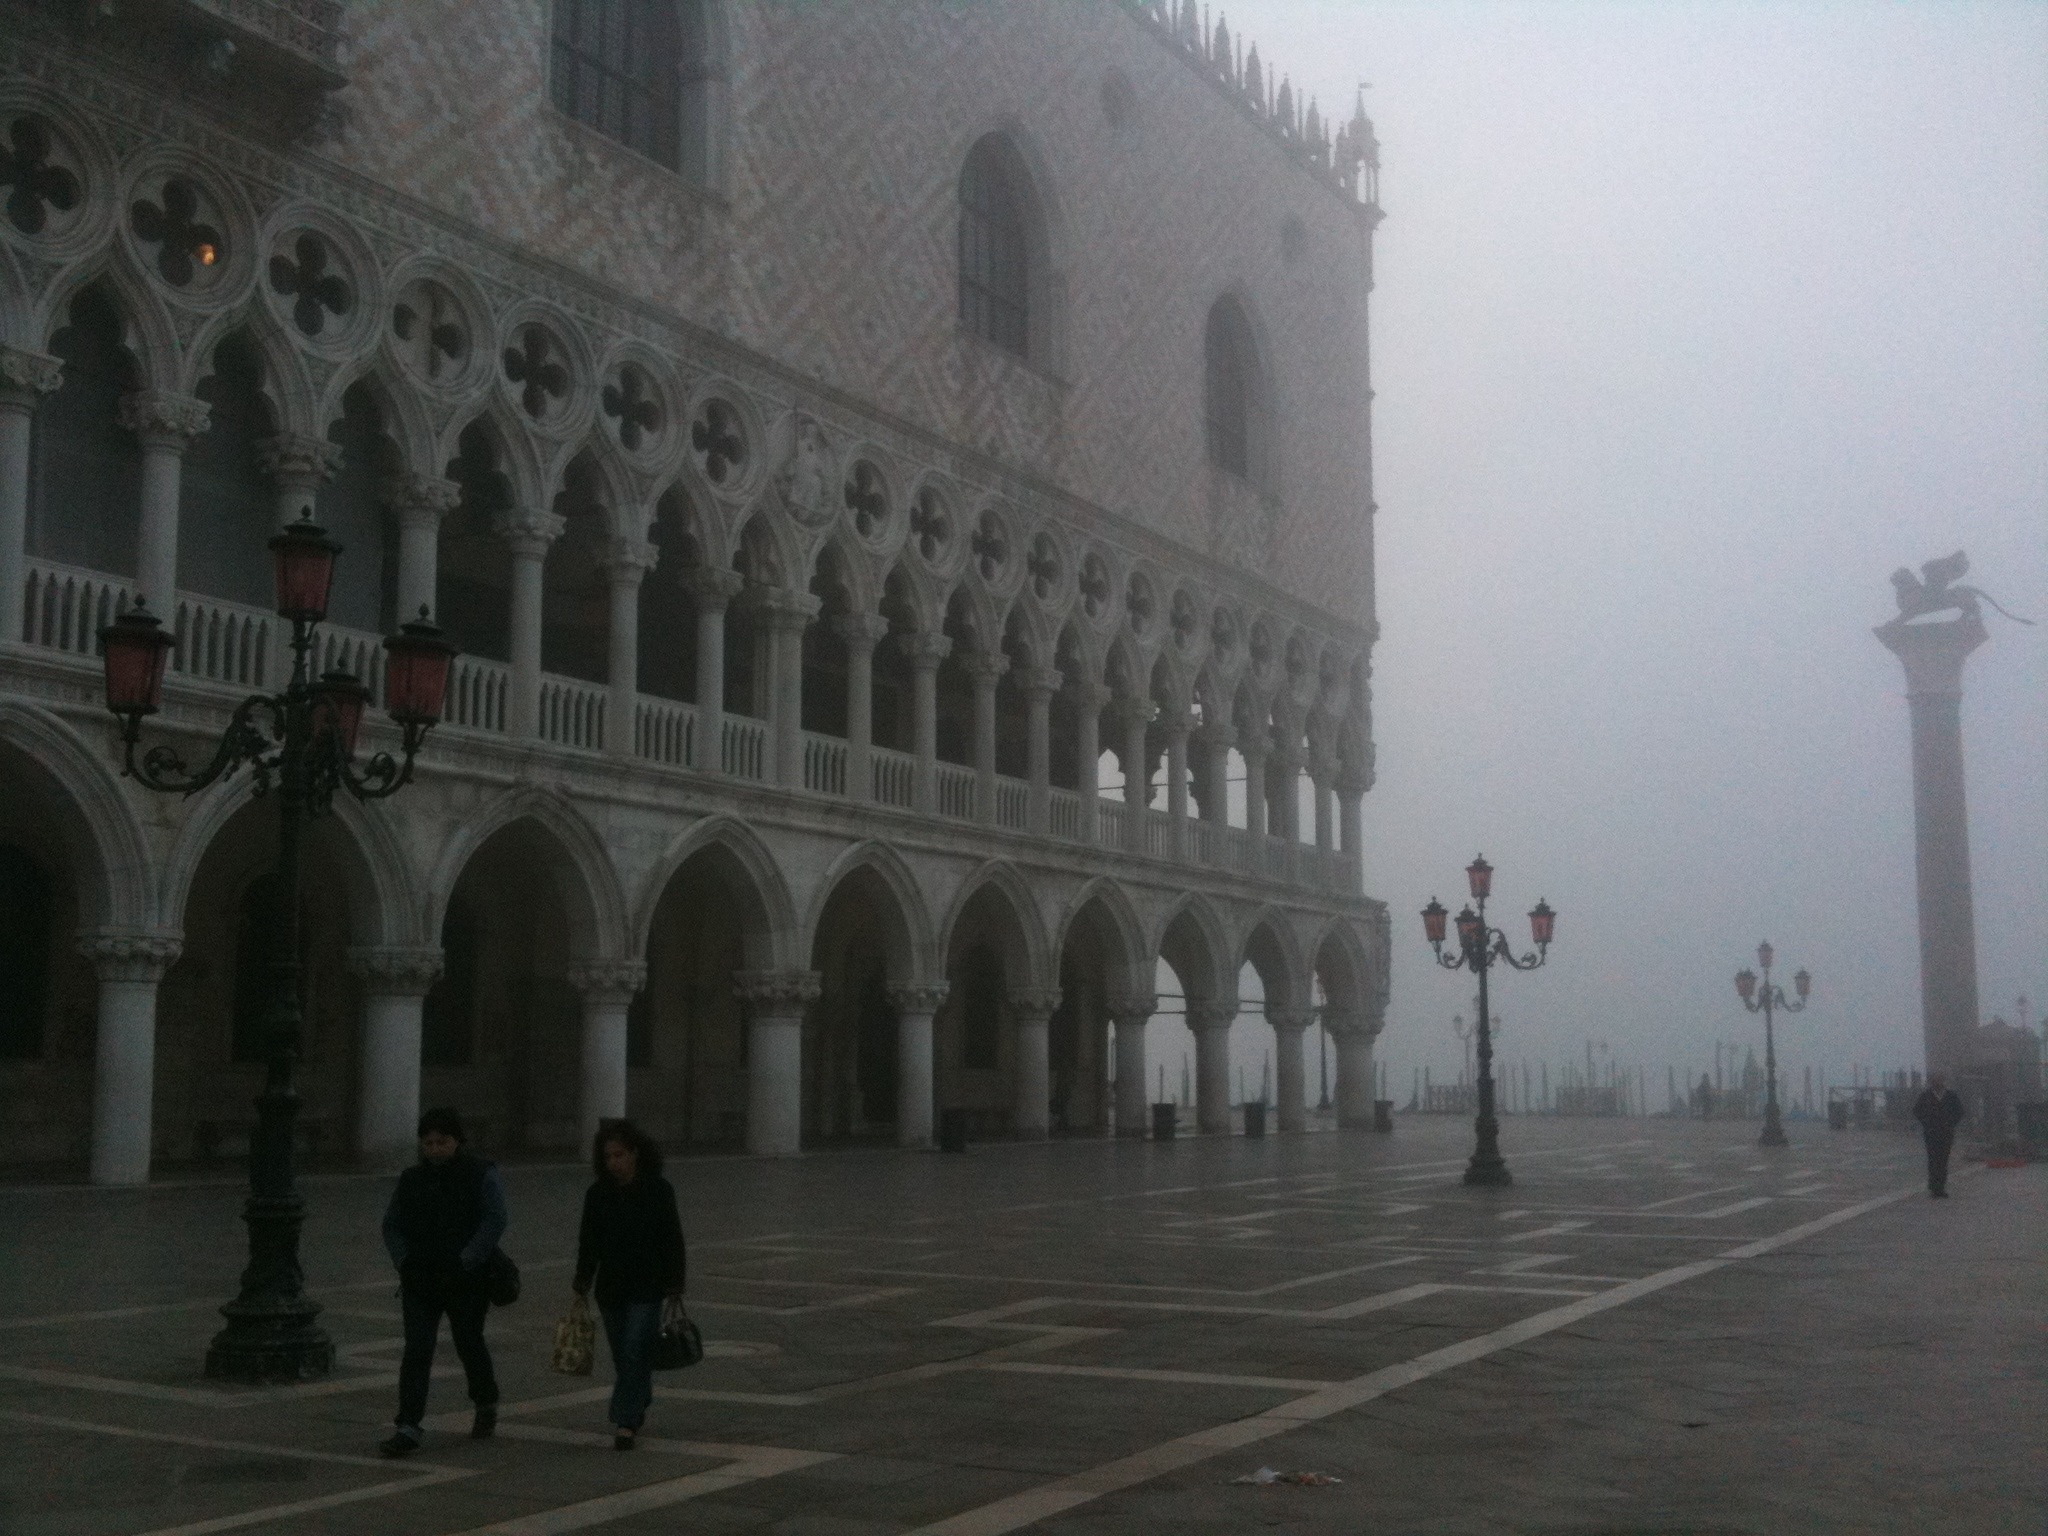 Venice at Daybreak - Mobile Photos - Day 6